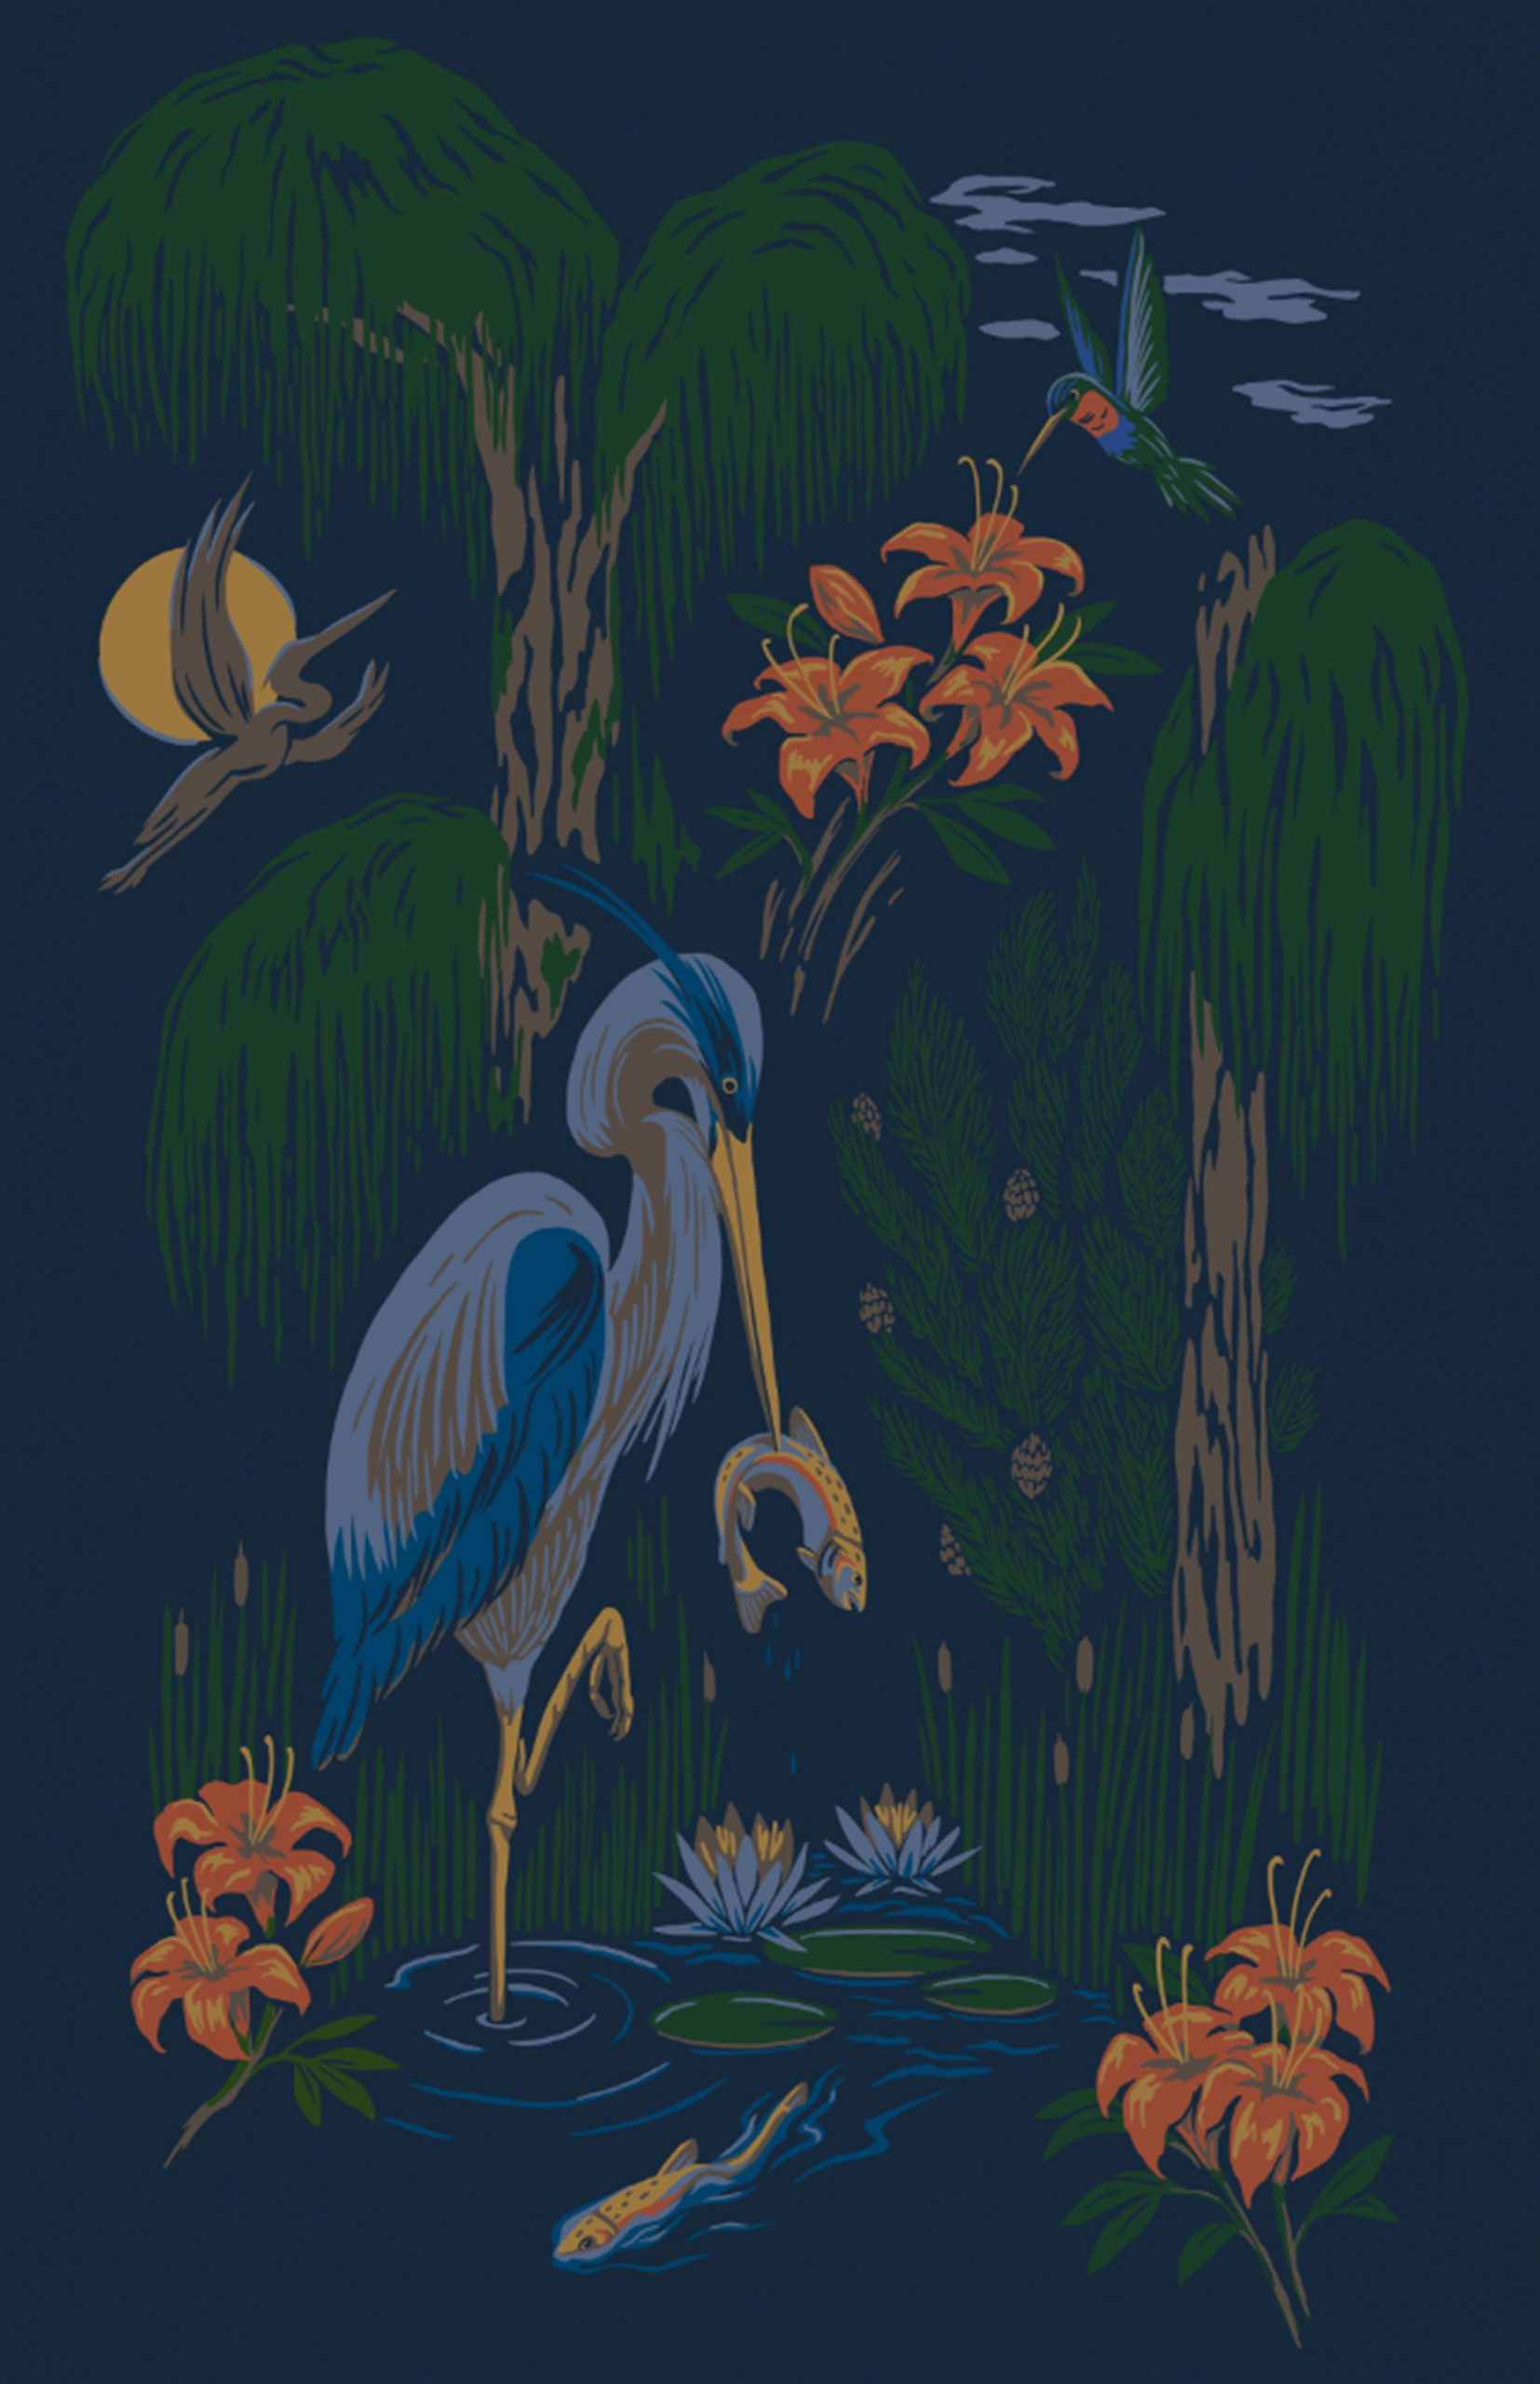 Heron_wallpaper_Dark_2400